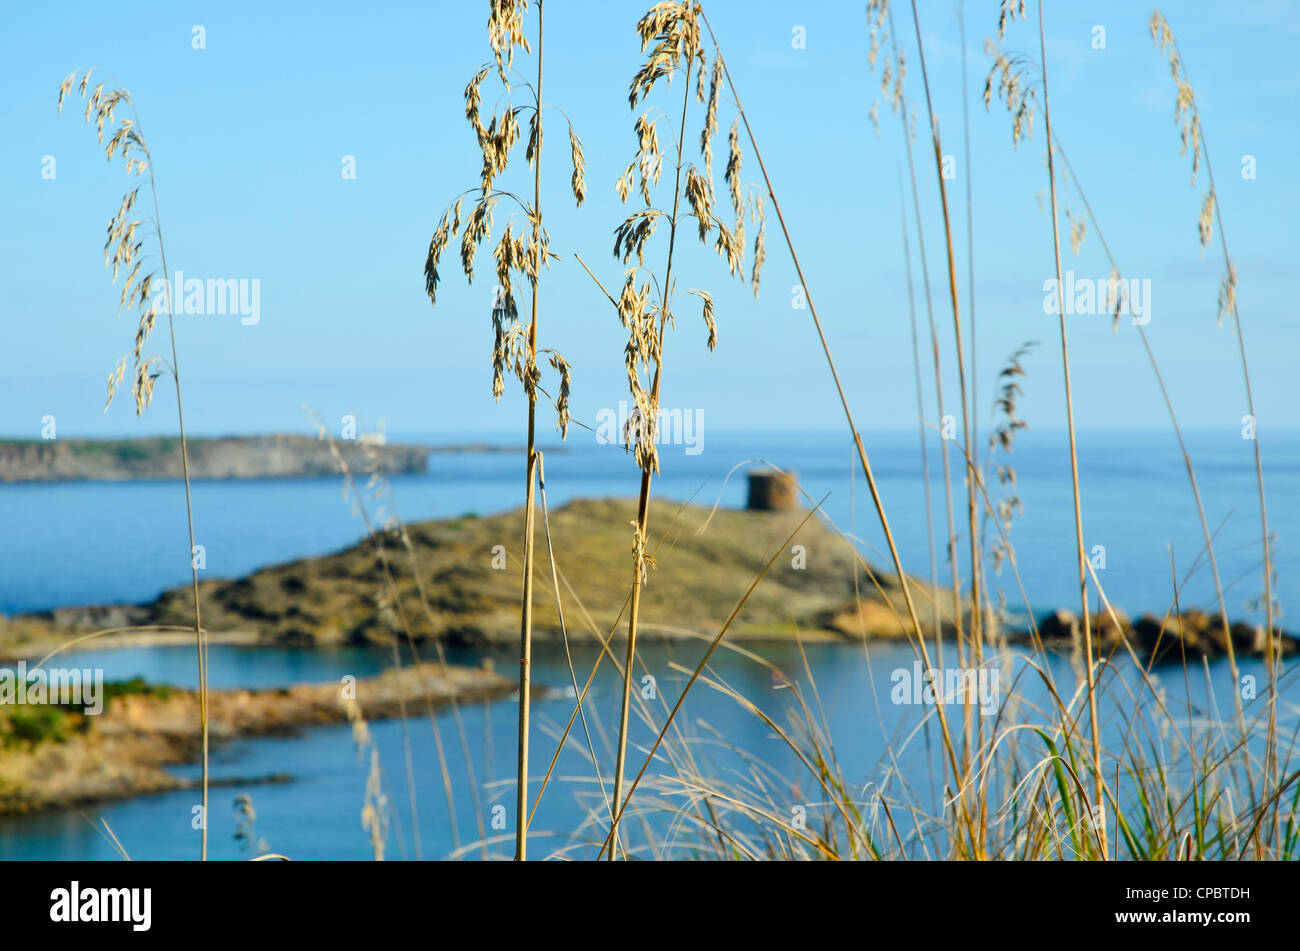 View towards the old defence tower of Sa Torreta on the coast of Menorca in the Balearic islands, Spain - Stock Image